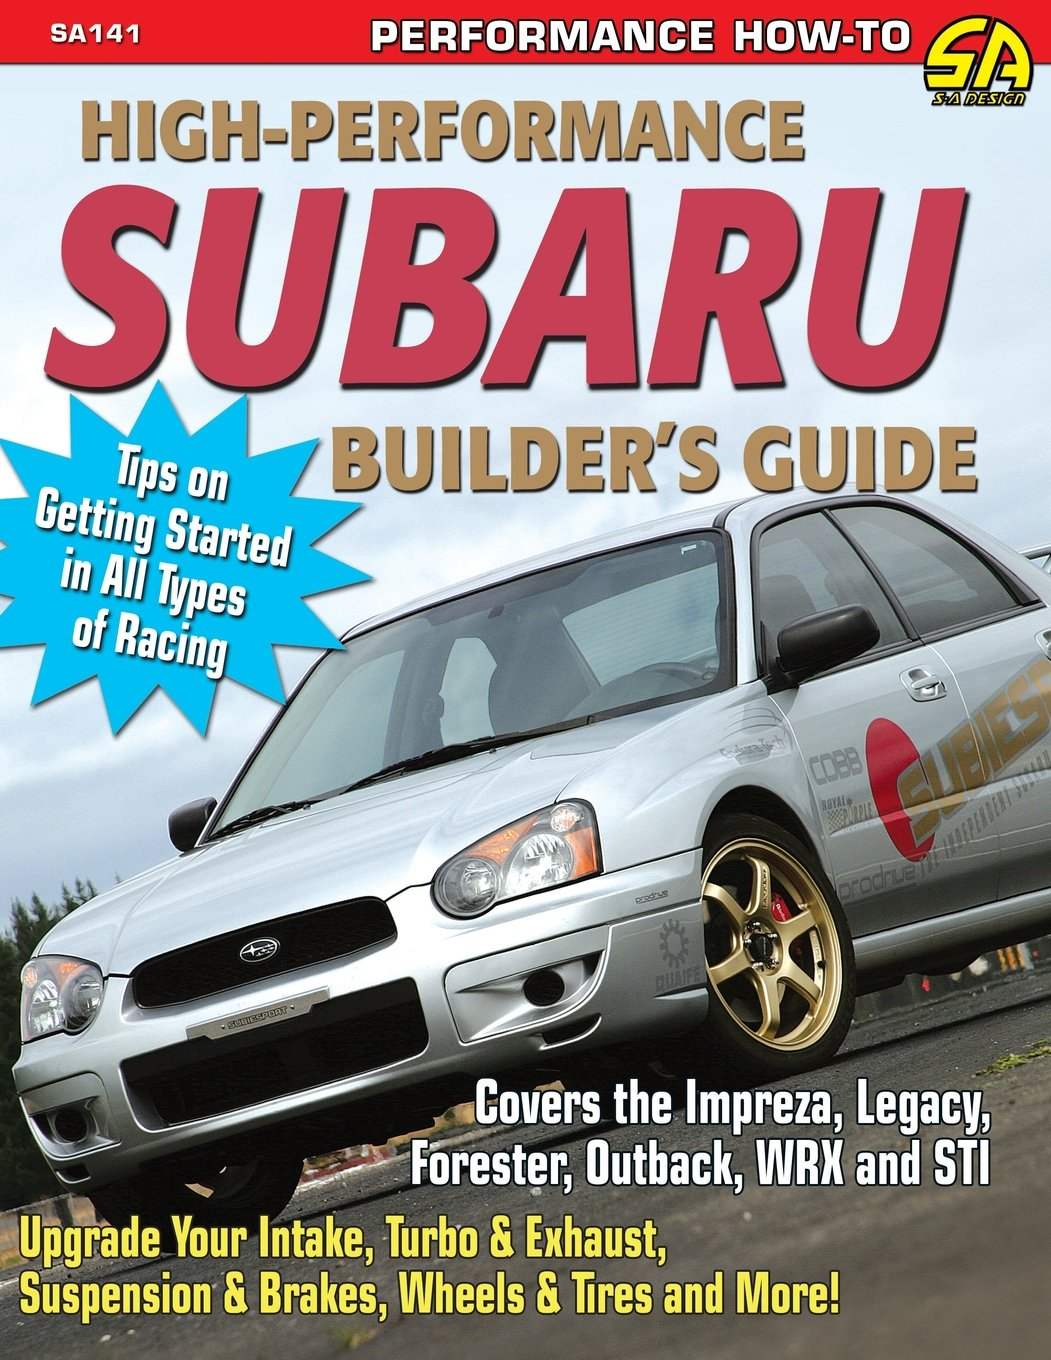 High performance subaru builders guide jeff zurschmeide high performance subaru builders guide jeff zurschmeide 9781613251348 amazon books fandeluxe Choice Image